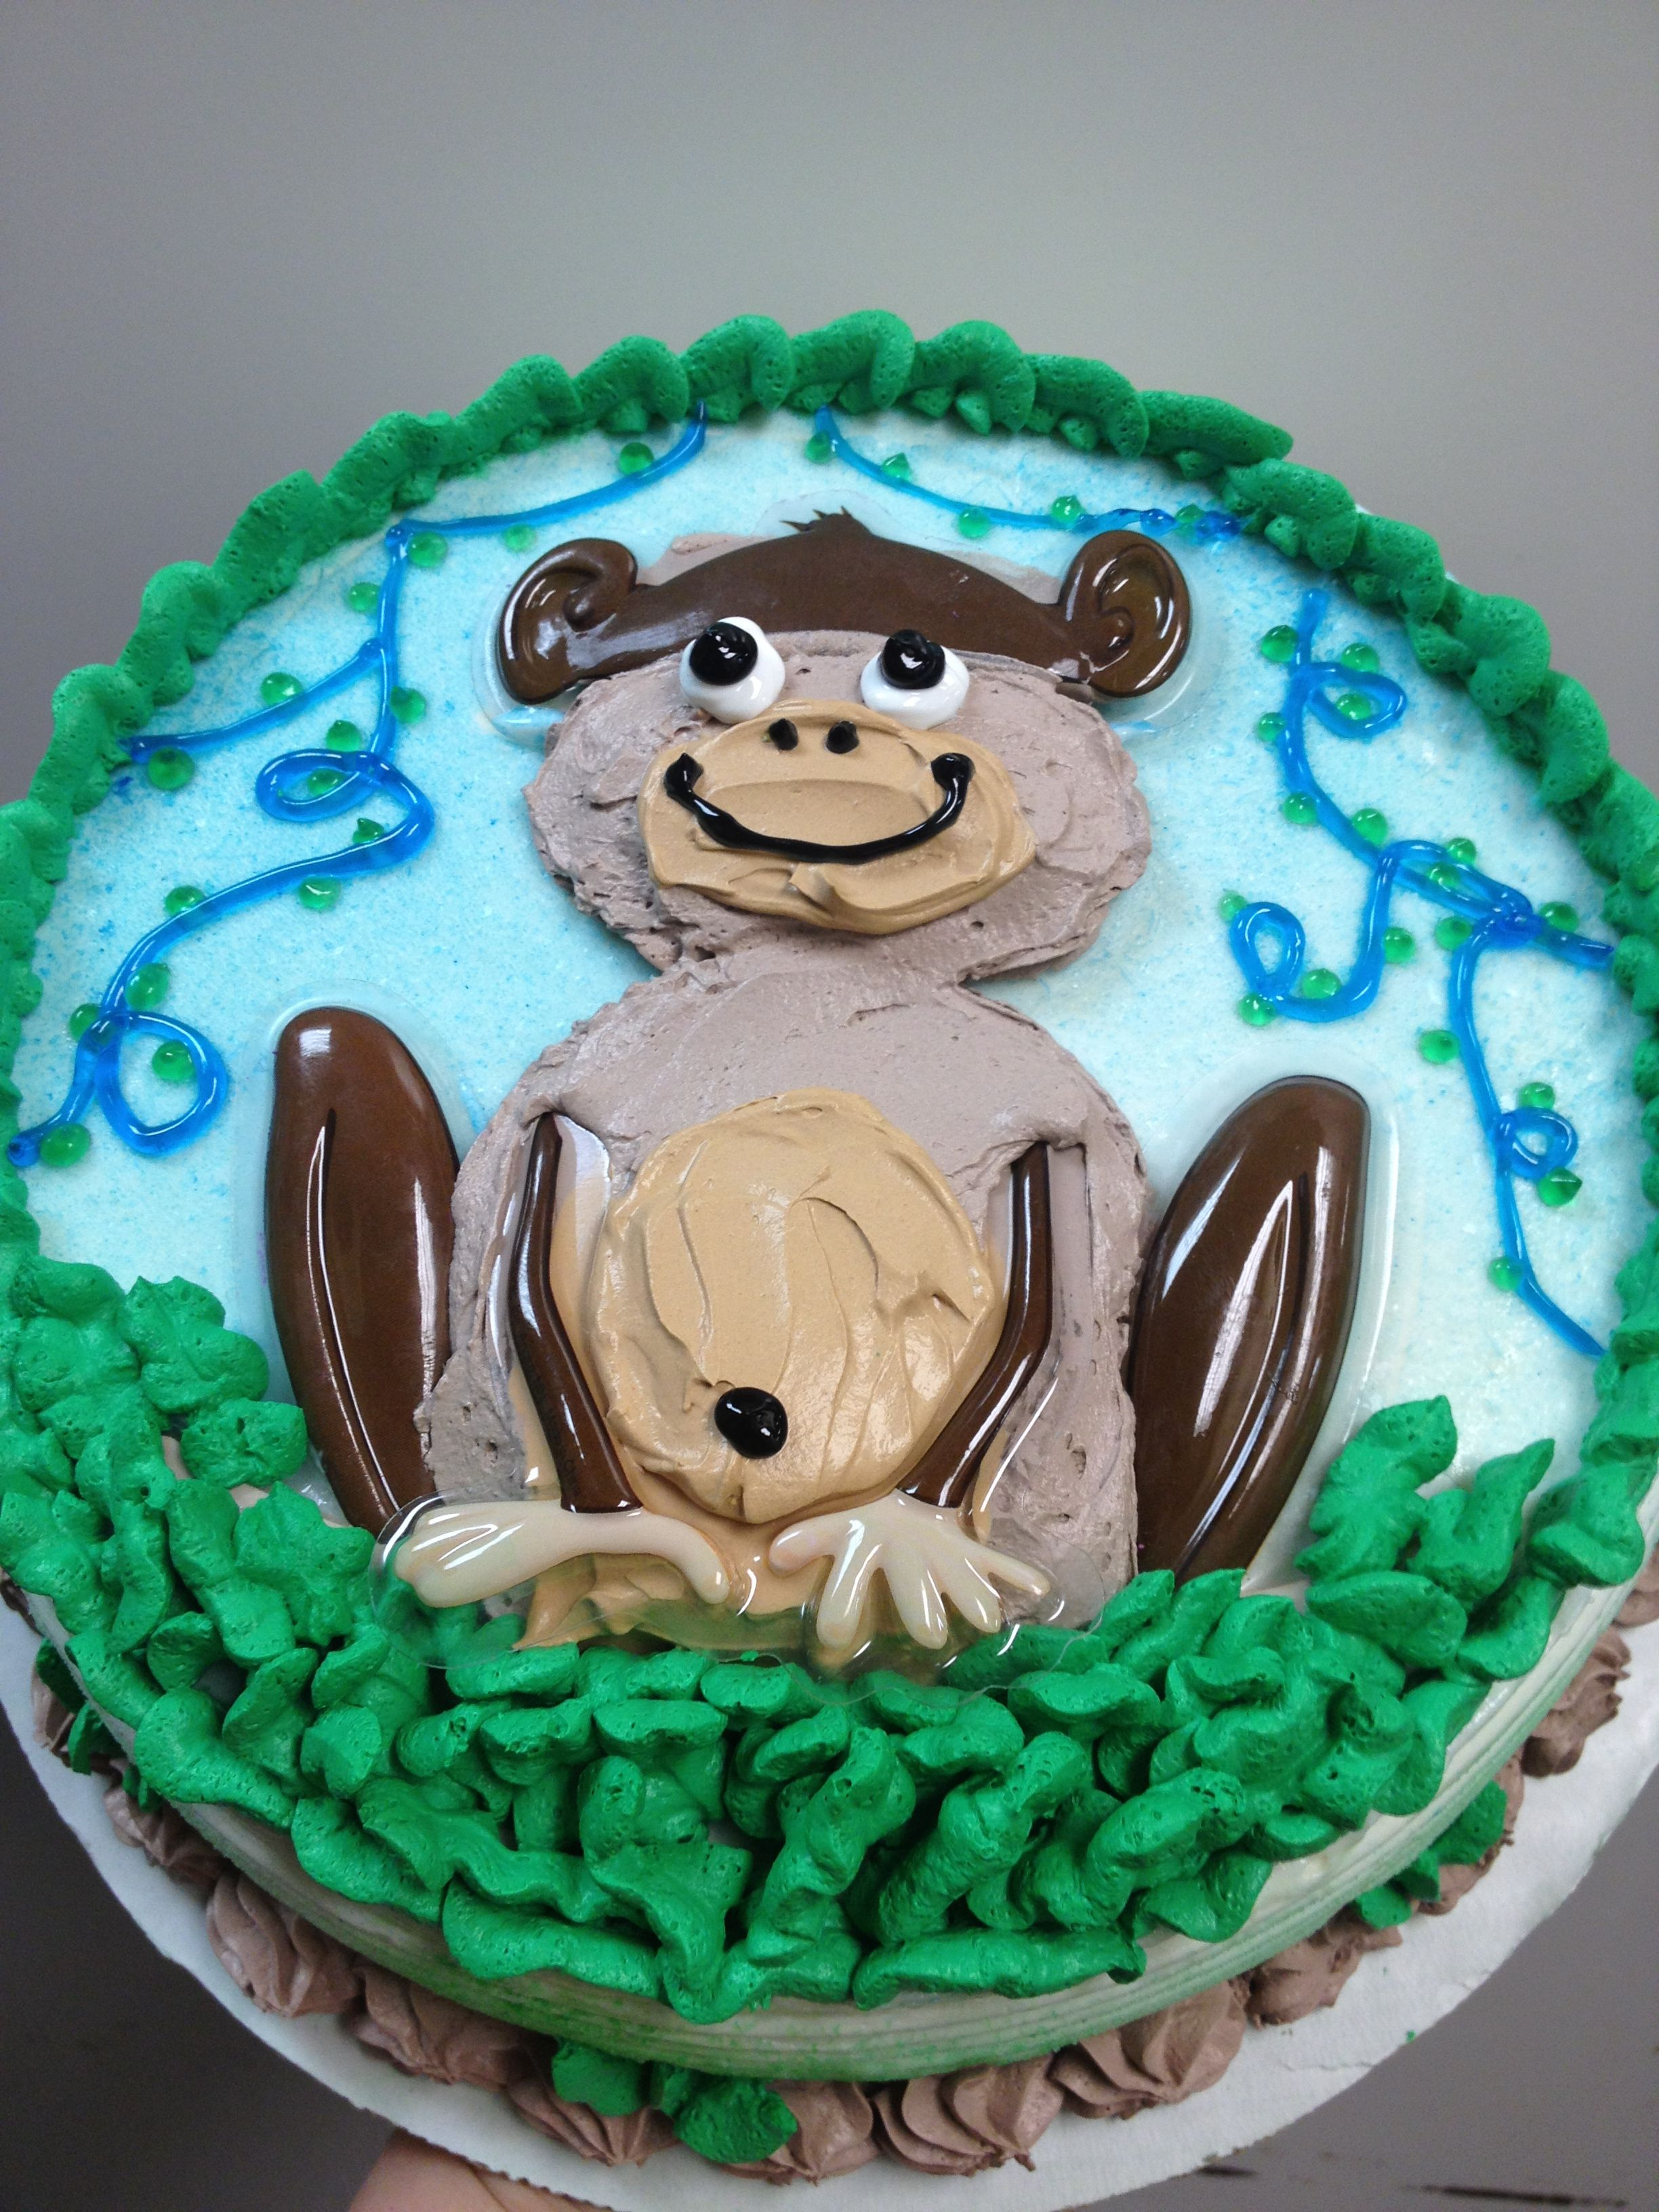 Dairy Queen Cakes Prices, Designs, and Ordering Process